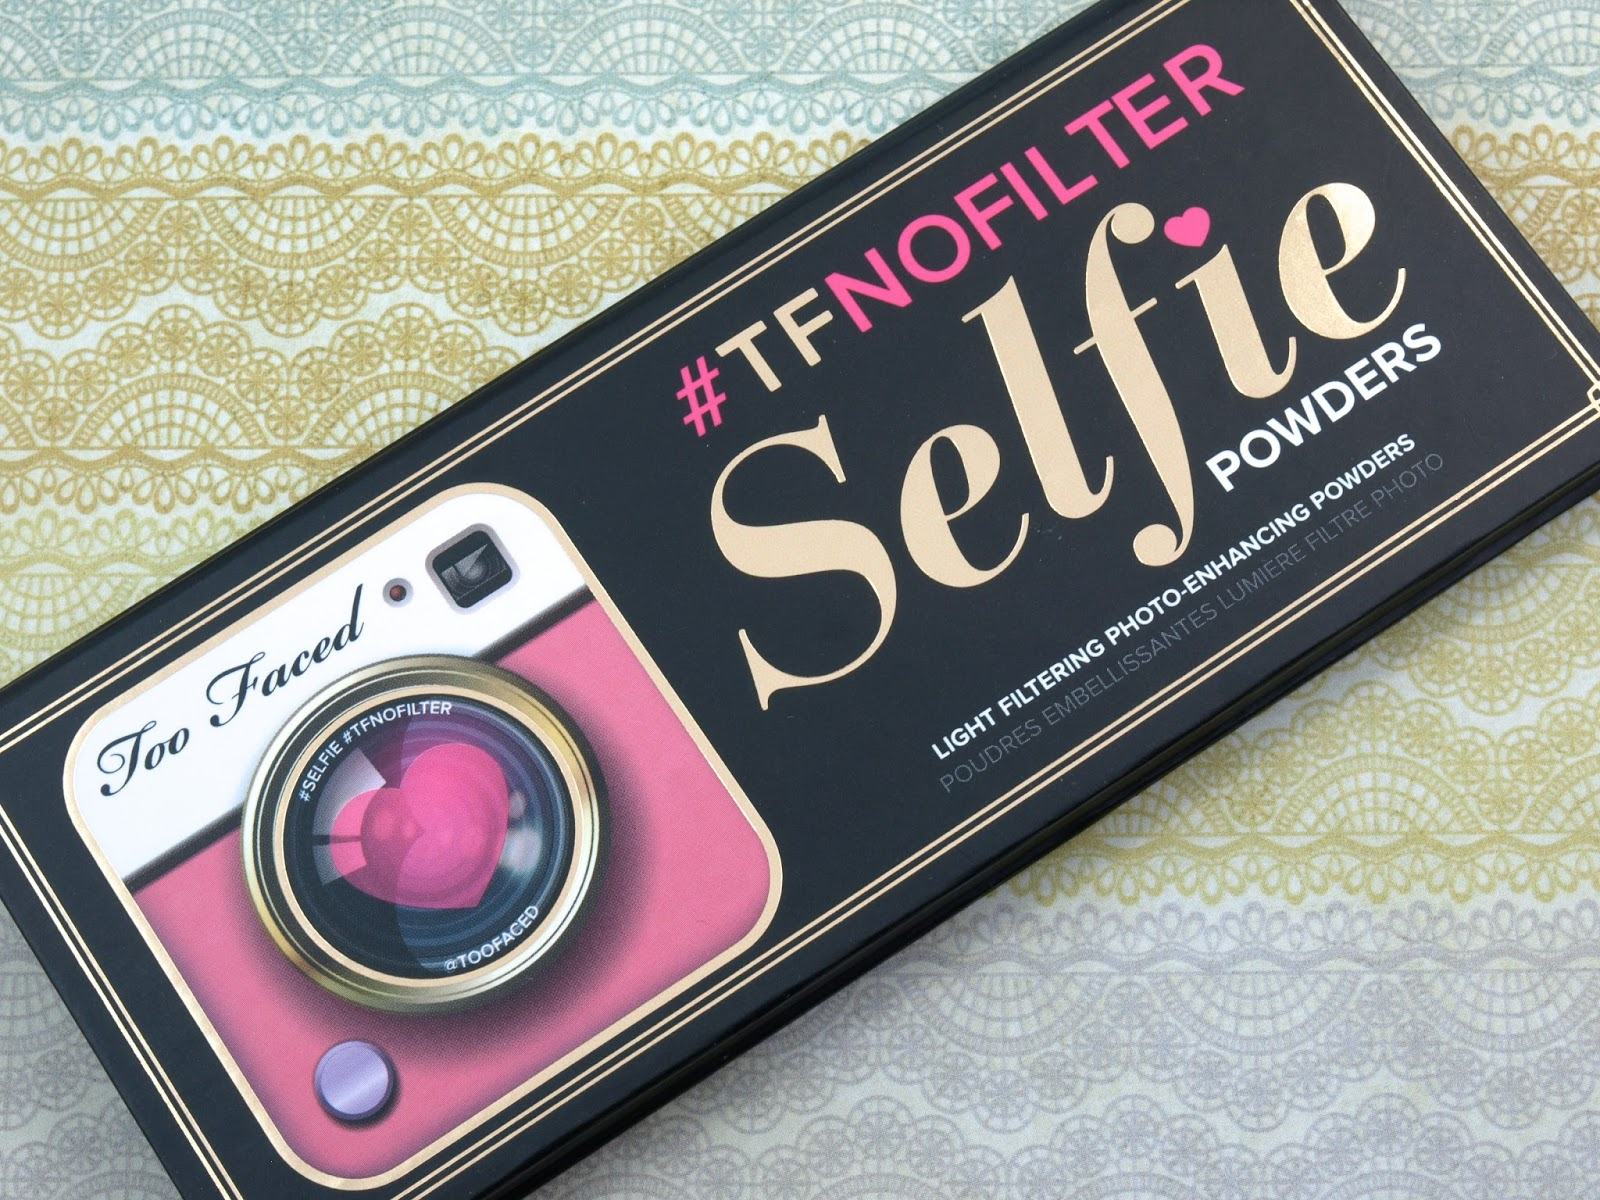 Too Faced #TFNofilter Selfie Powders Light Filtering Photo-Enhancing Powders: Review and Swatches